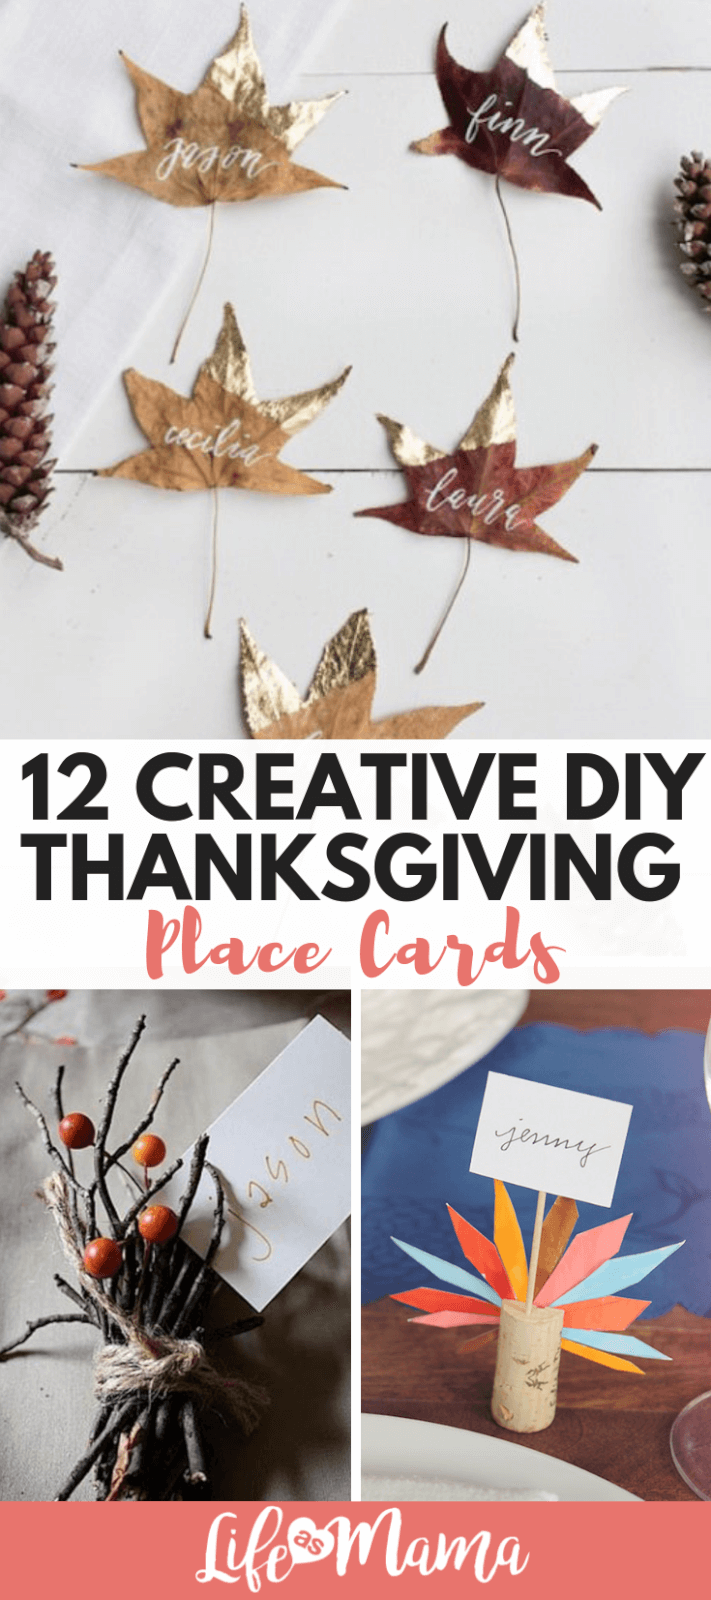 12 Creative DIY Thanksgiving Place Cards